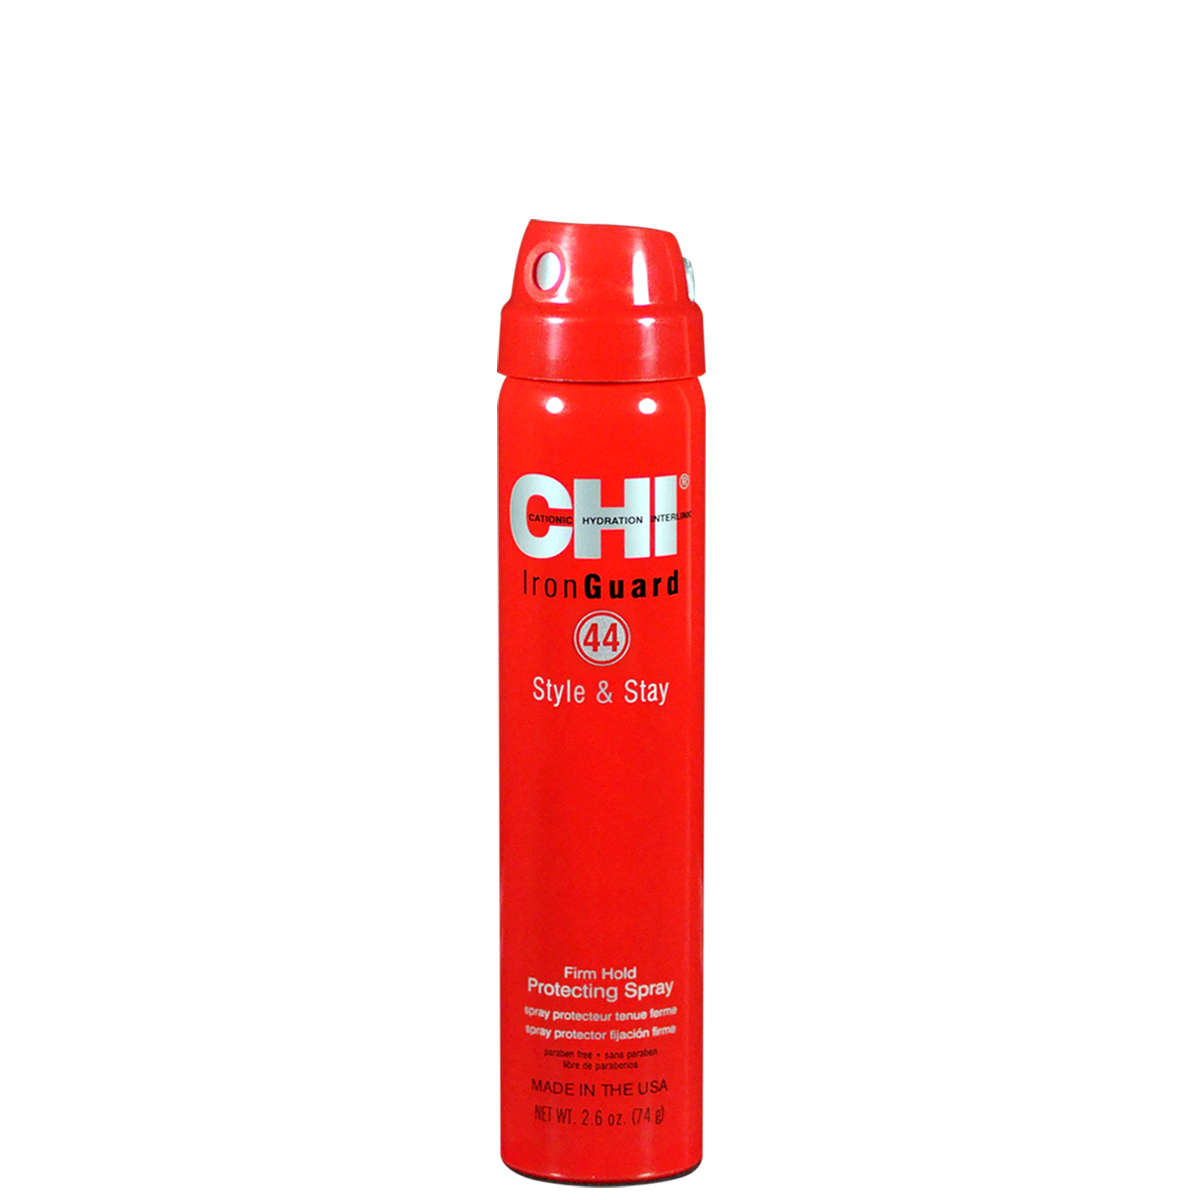 CHI 44 Iron Guard Style & Stay Firm Hold Protecting Spray Pre-Stylers